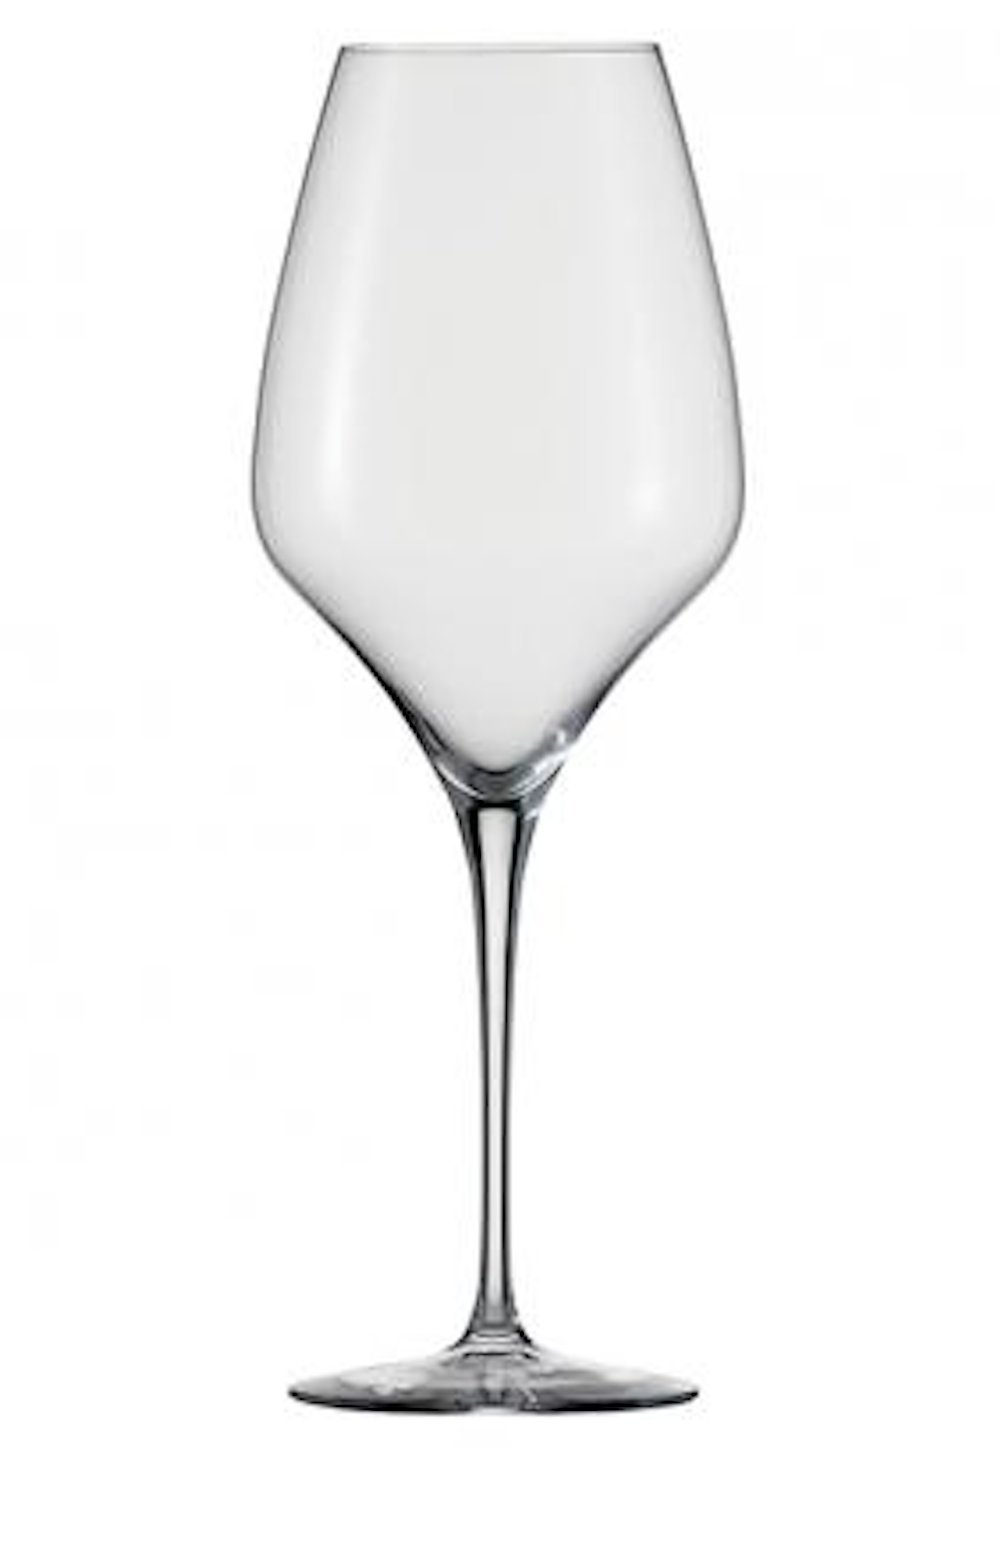 Schott Zwiesel 1872 The First Full Bodied Aged Red Wine Glasses - Set of 2 by Schott Zwiesel